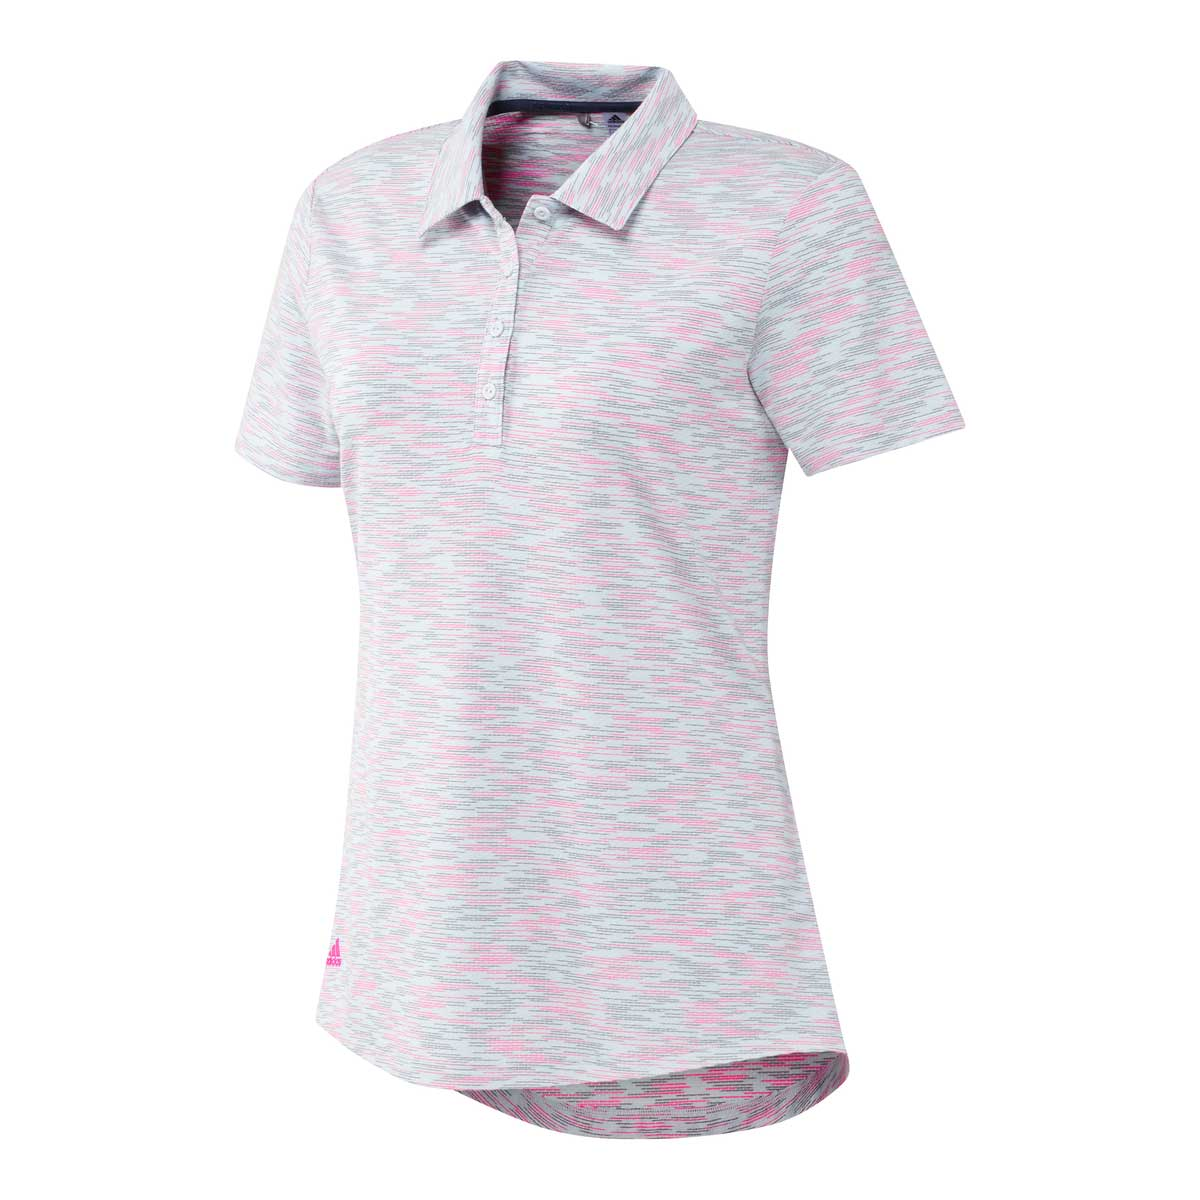 Adidas Women's Space Dye White/Screaming Pink Polo